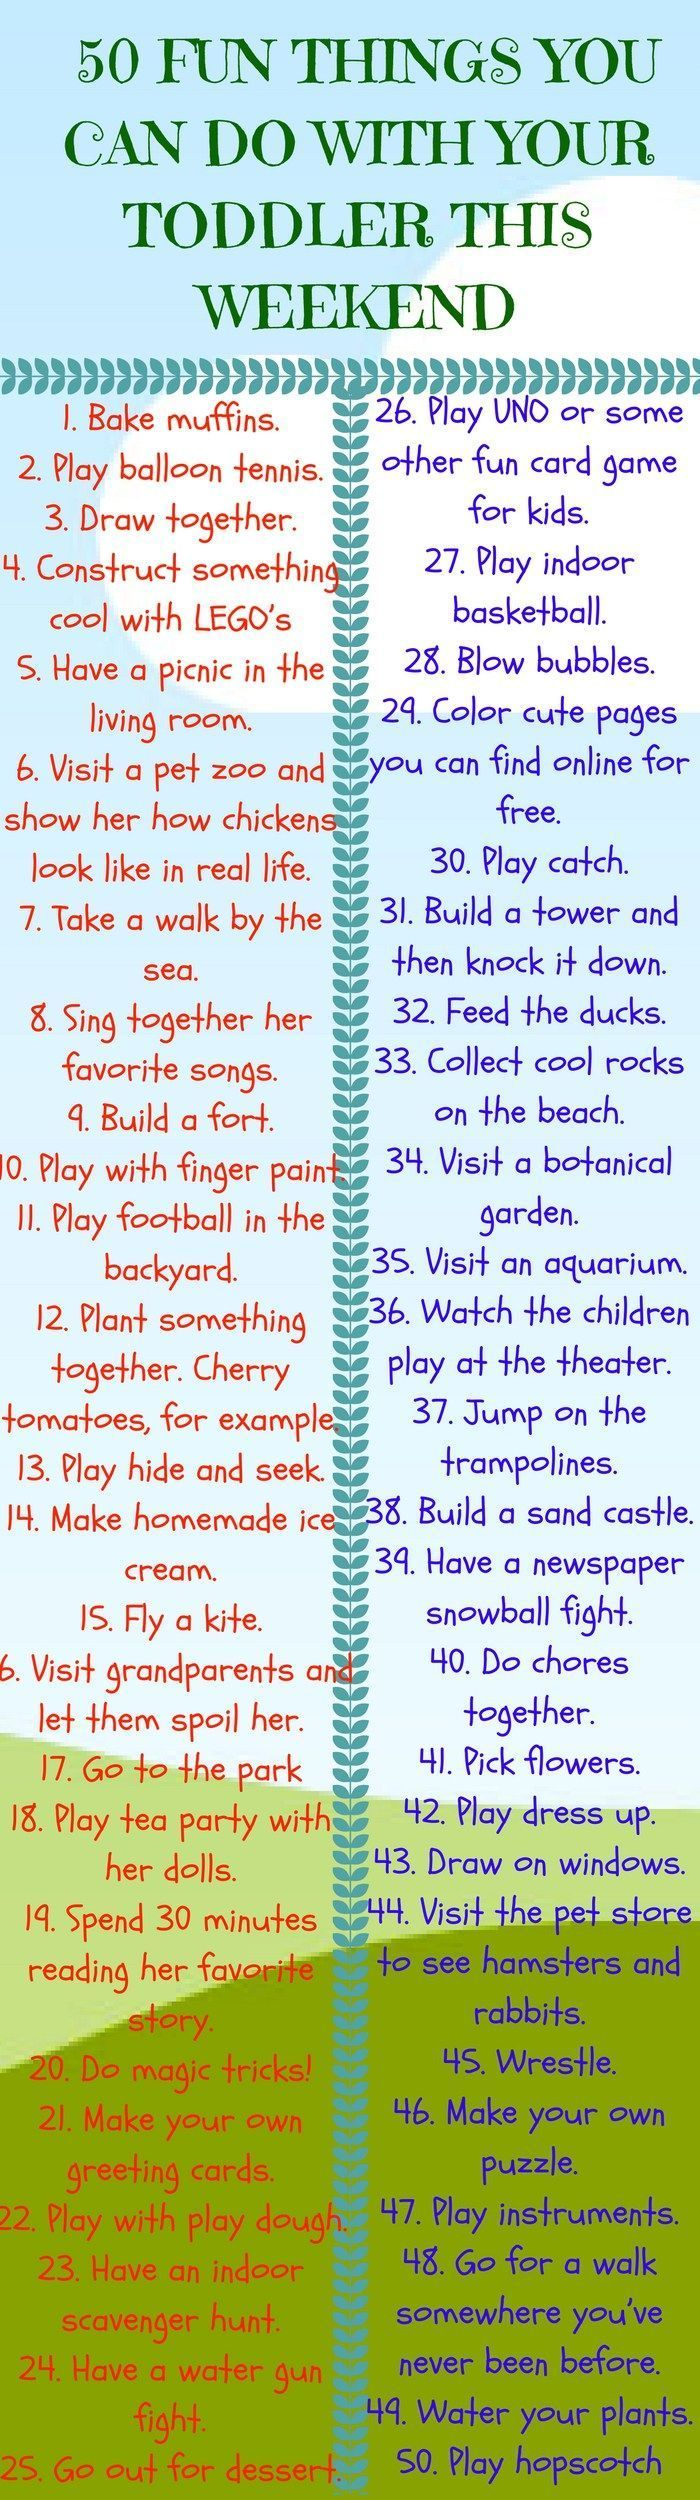 50 Fun Things You Can Do With Your Toddler This Weekend #parentingadviceboys